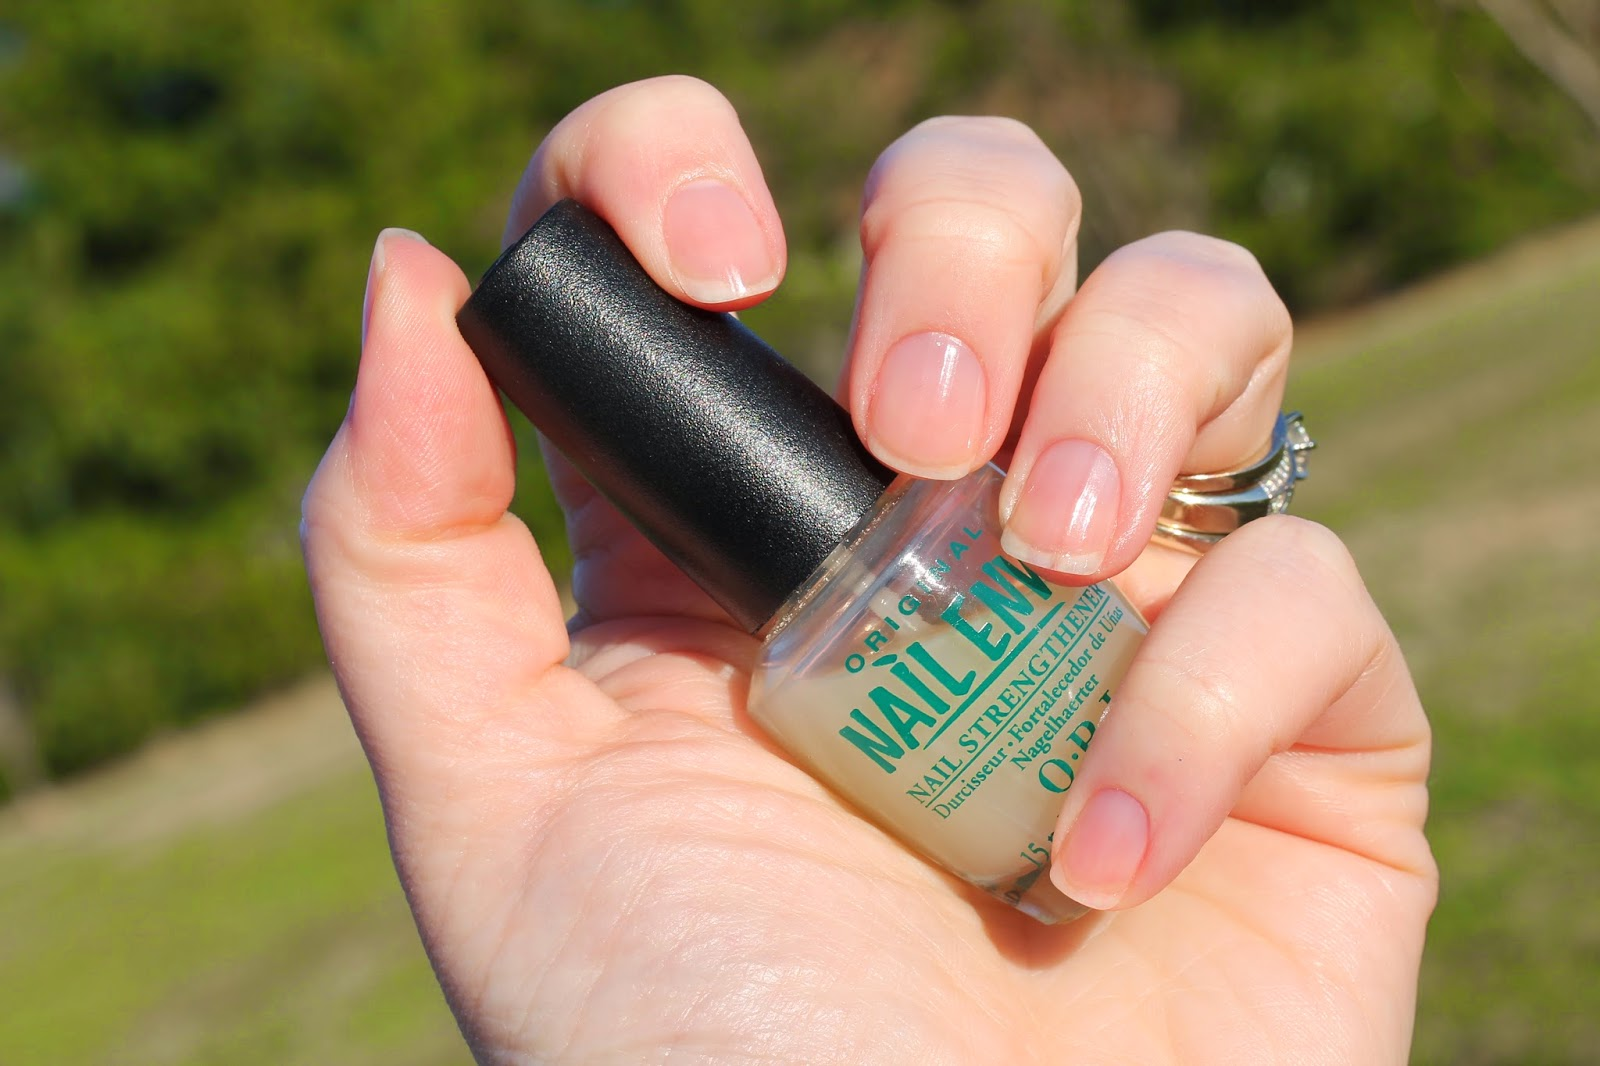 Manicure Musts: OPI Nail Envy - At the Pink of Perfection